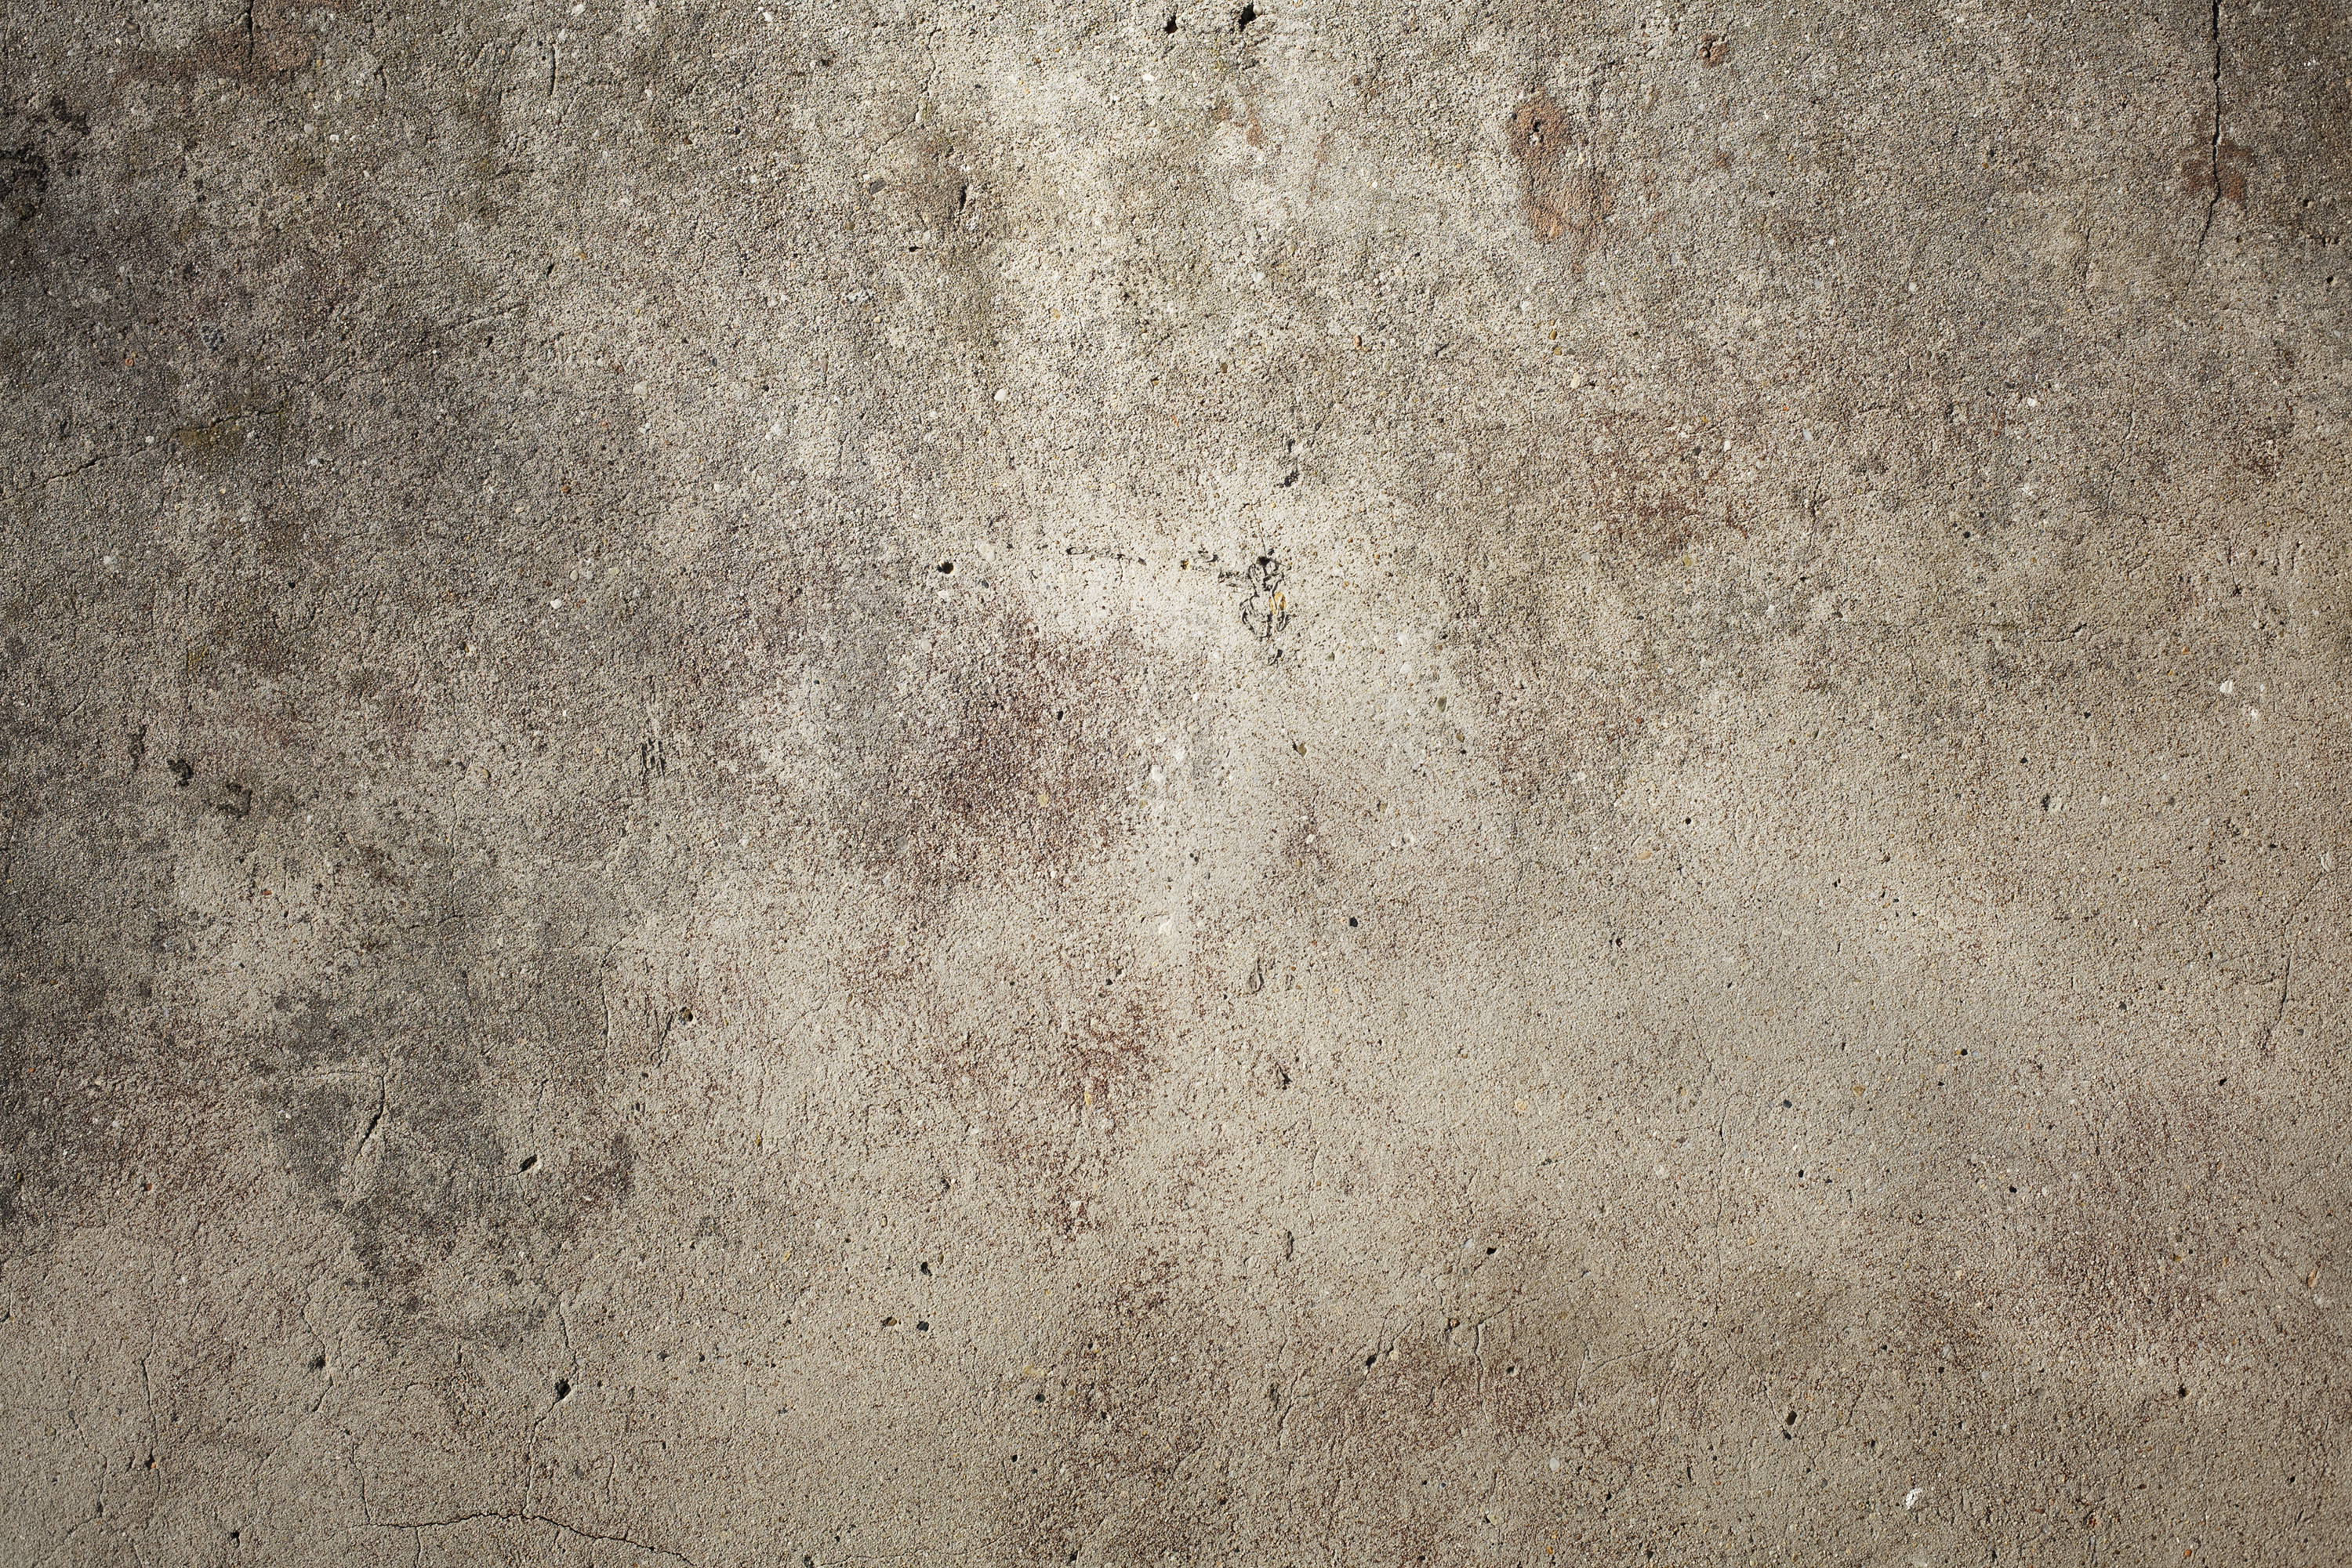 Abstract Grunge Texture Art PPT Backgrounds